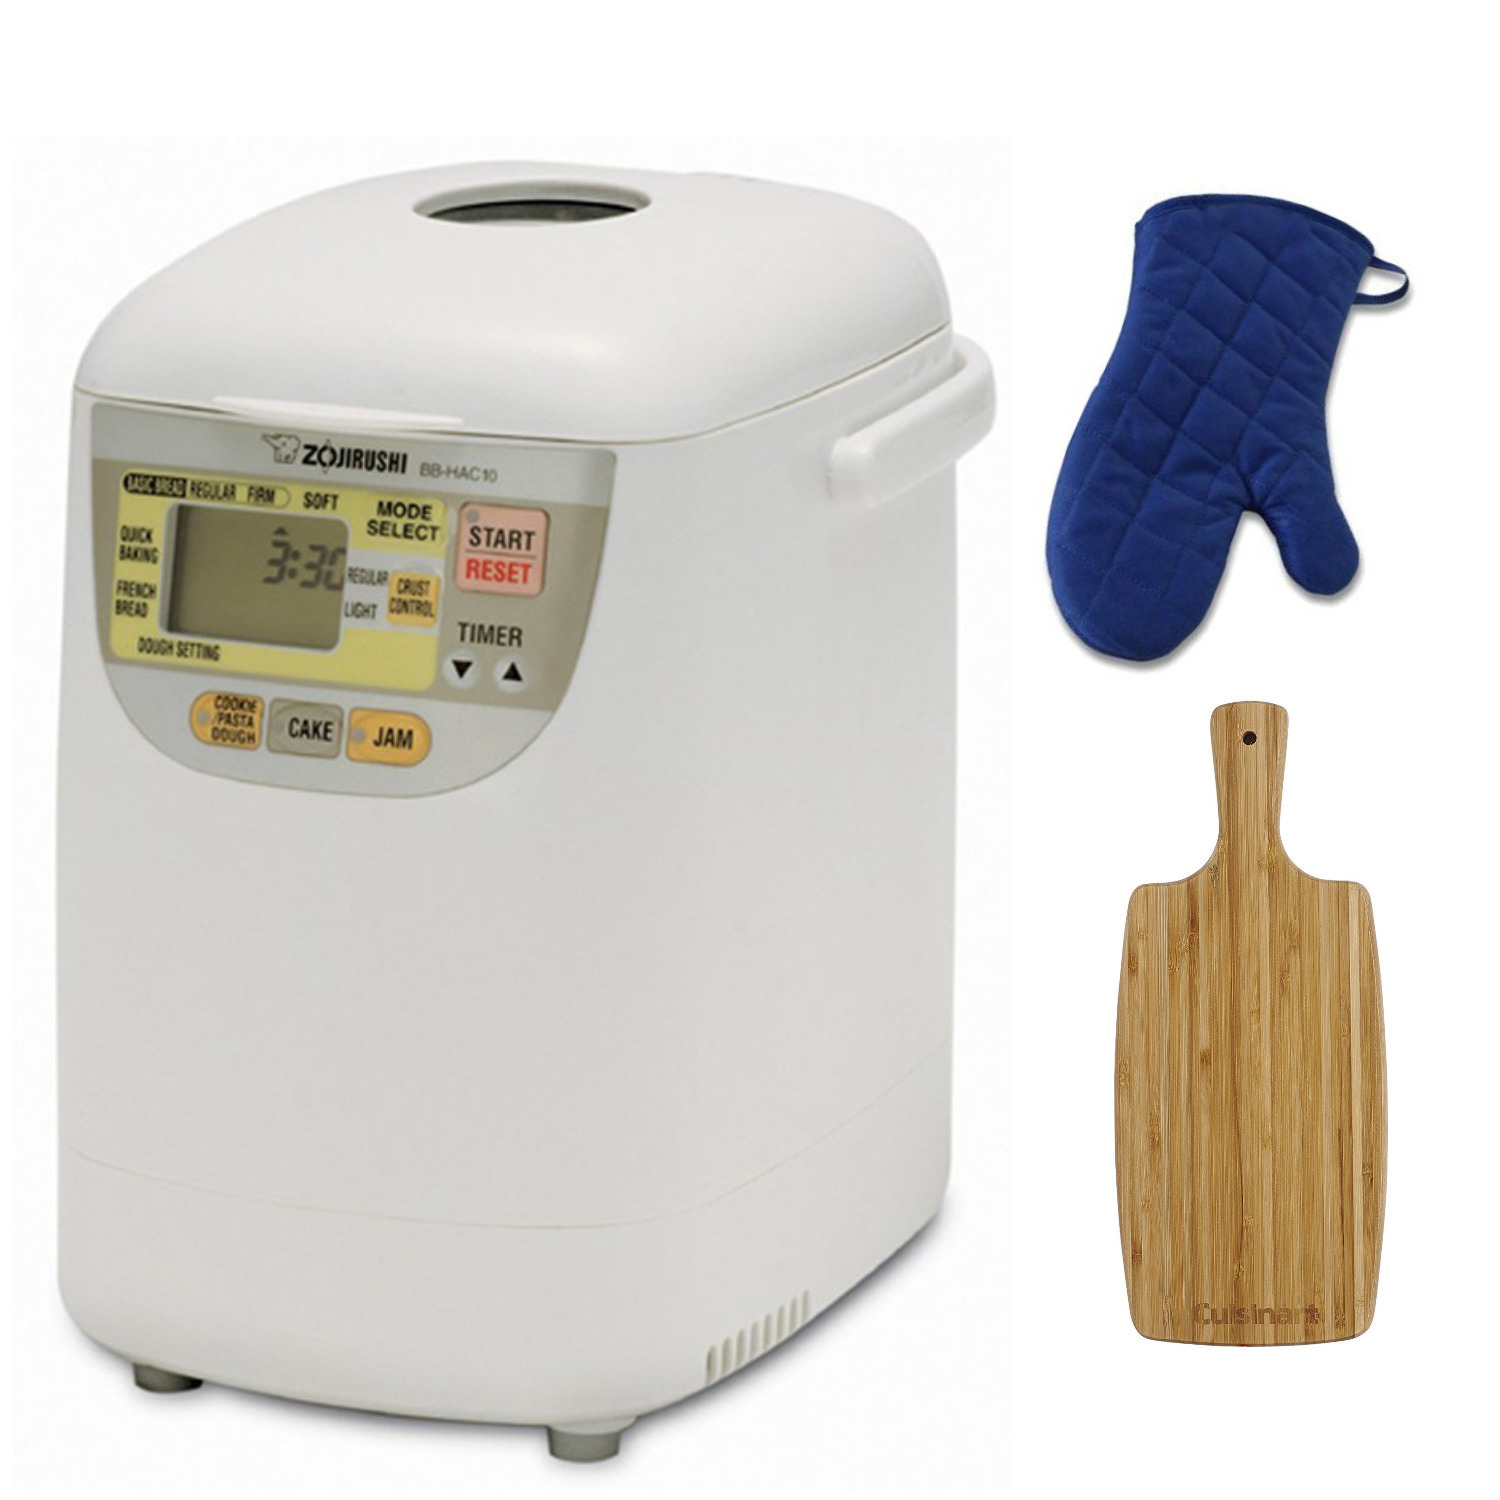 Zojirushi Home Bakery Mini Breadmaker with Cutting Board and Oven Mitt Bundle